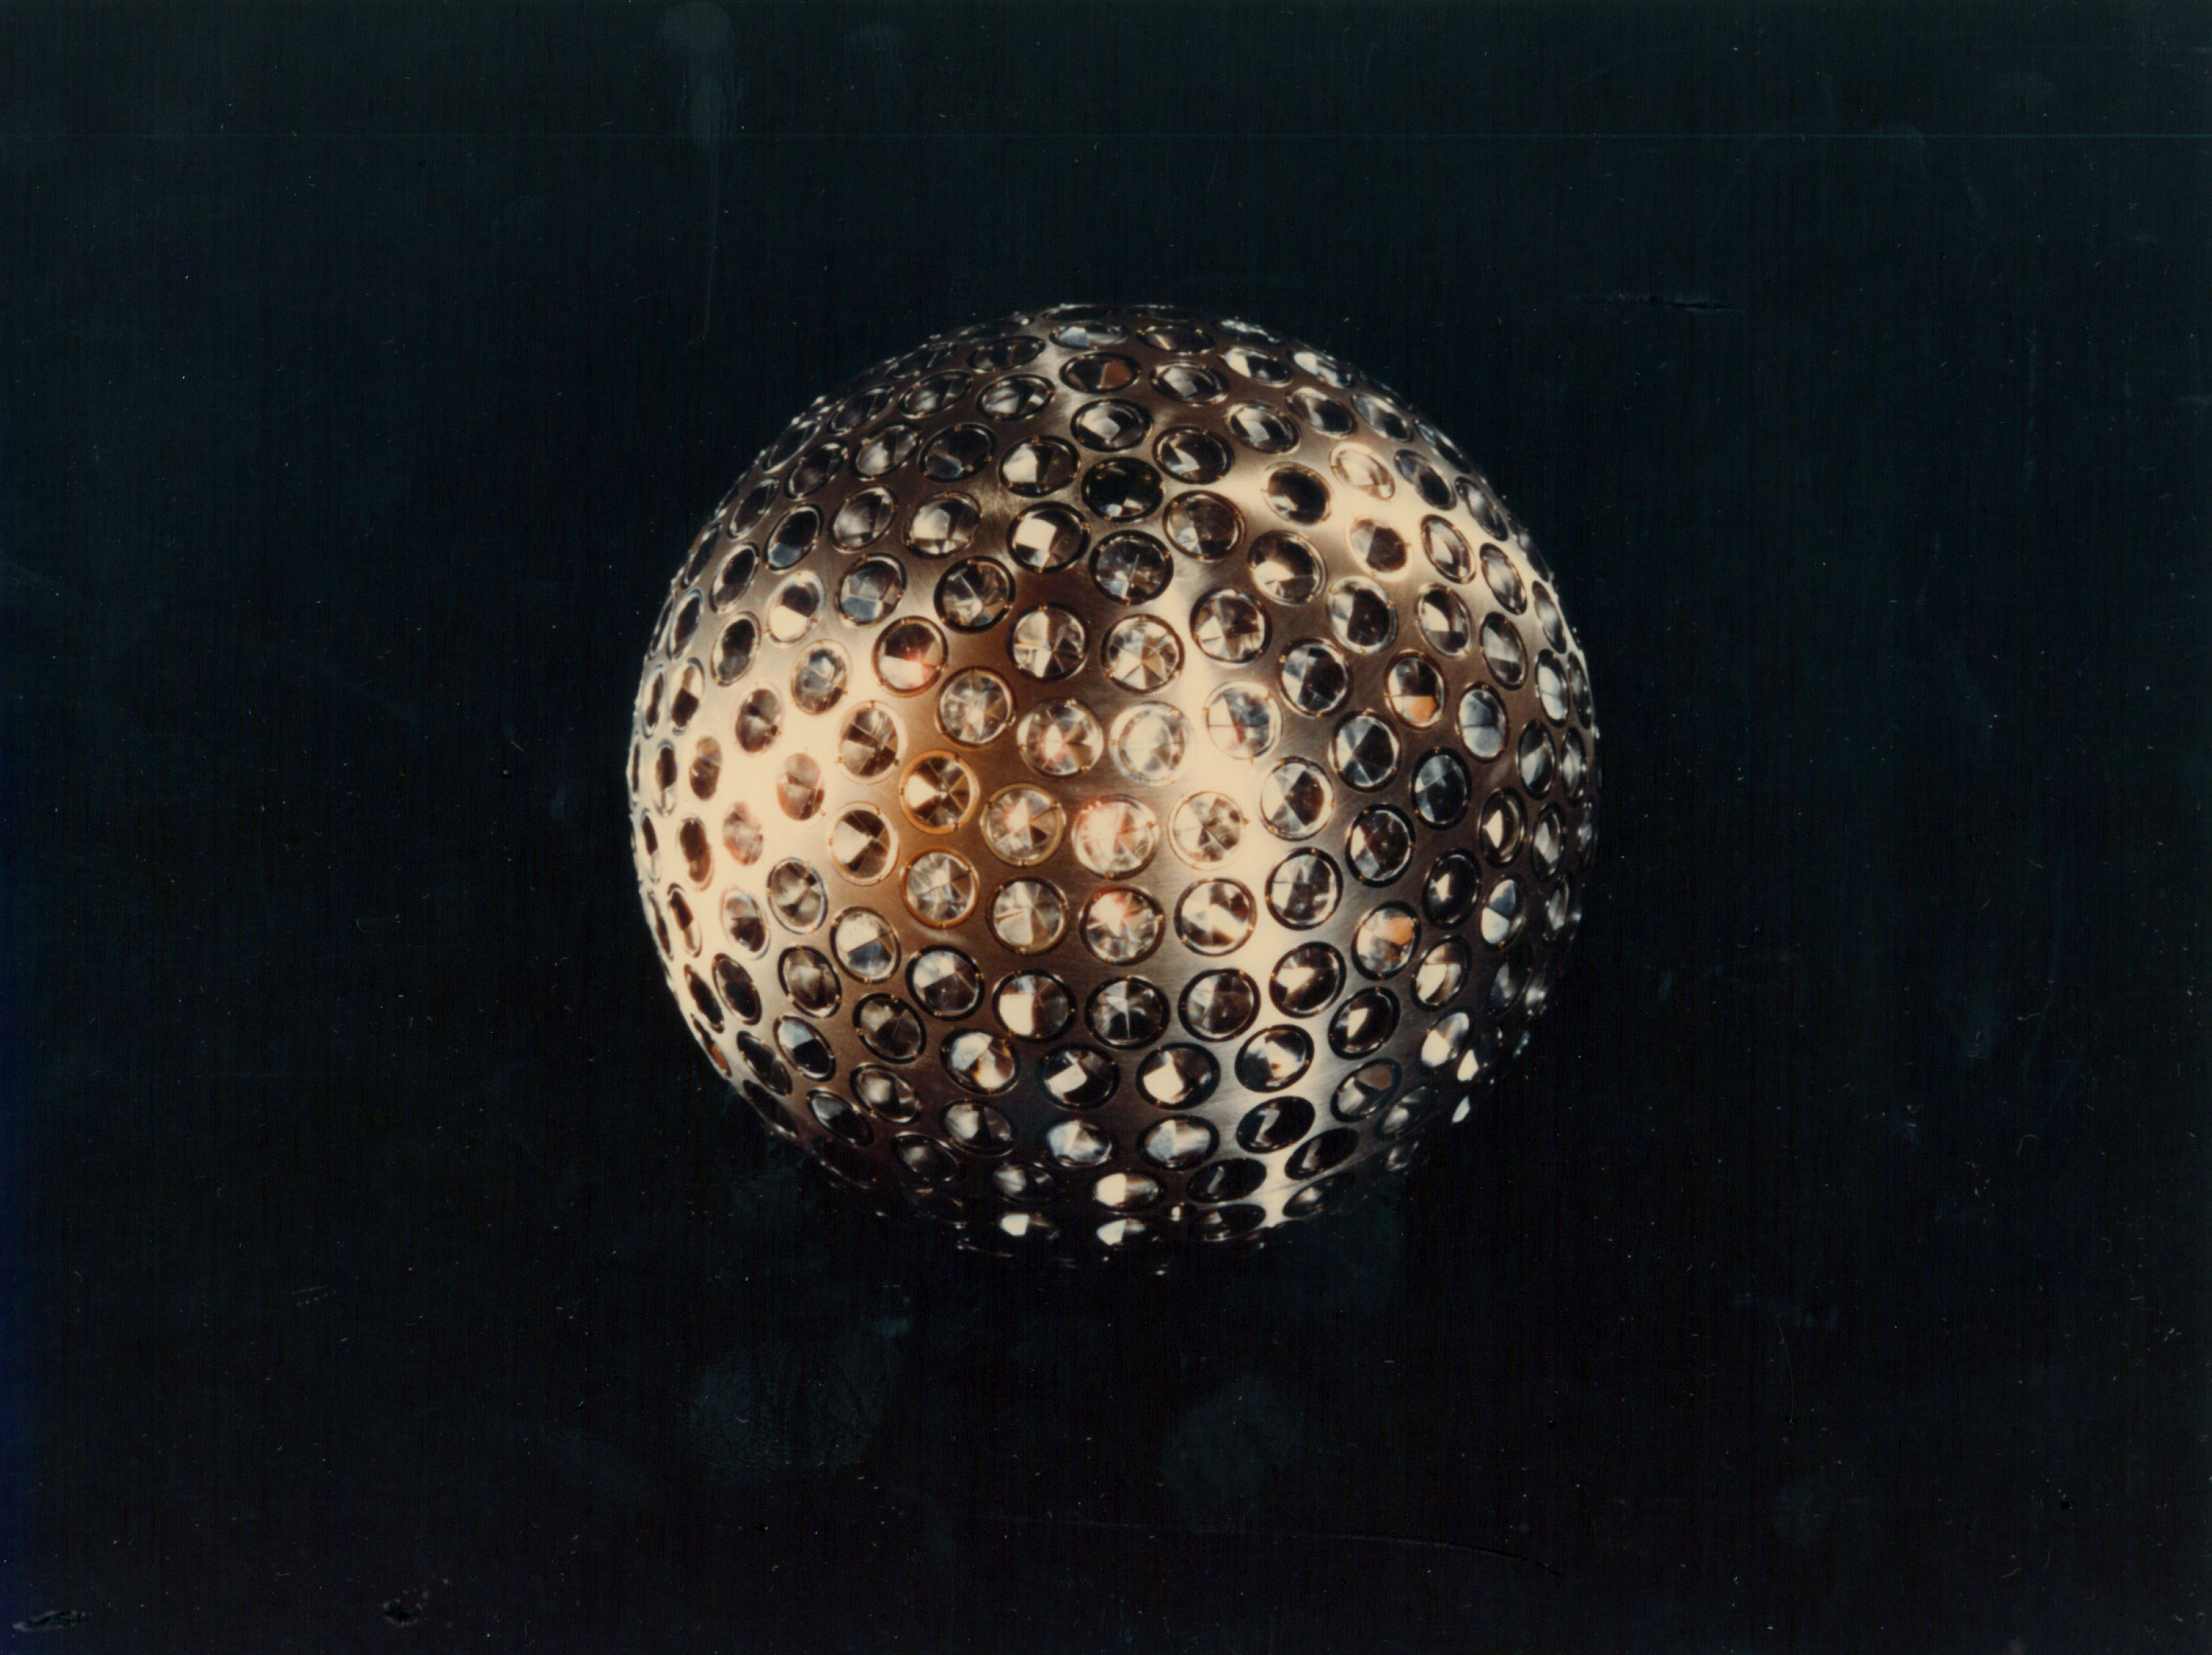 Metallic ball regularly pockmarked with prisms